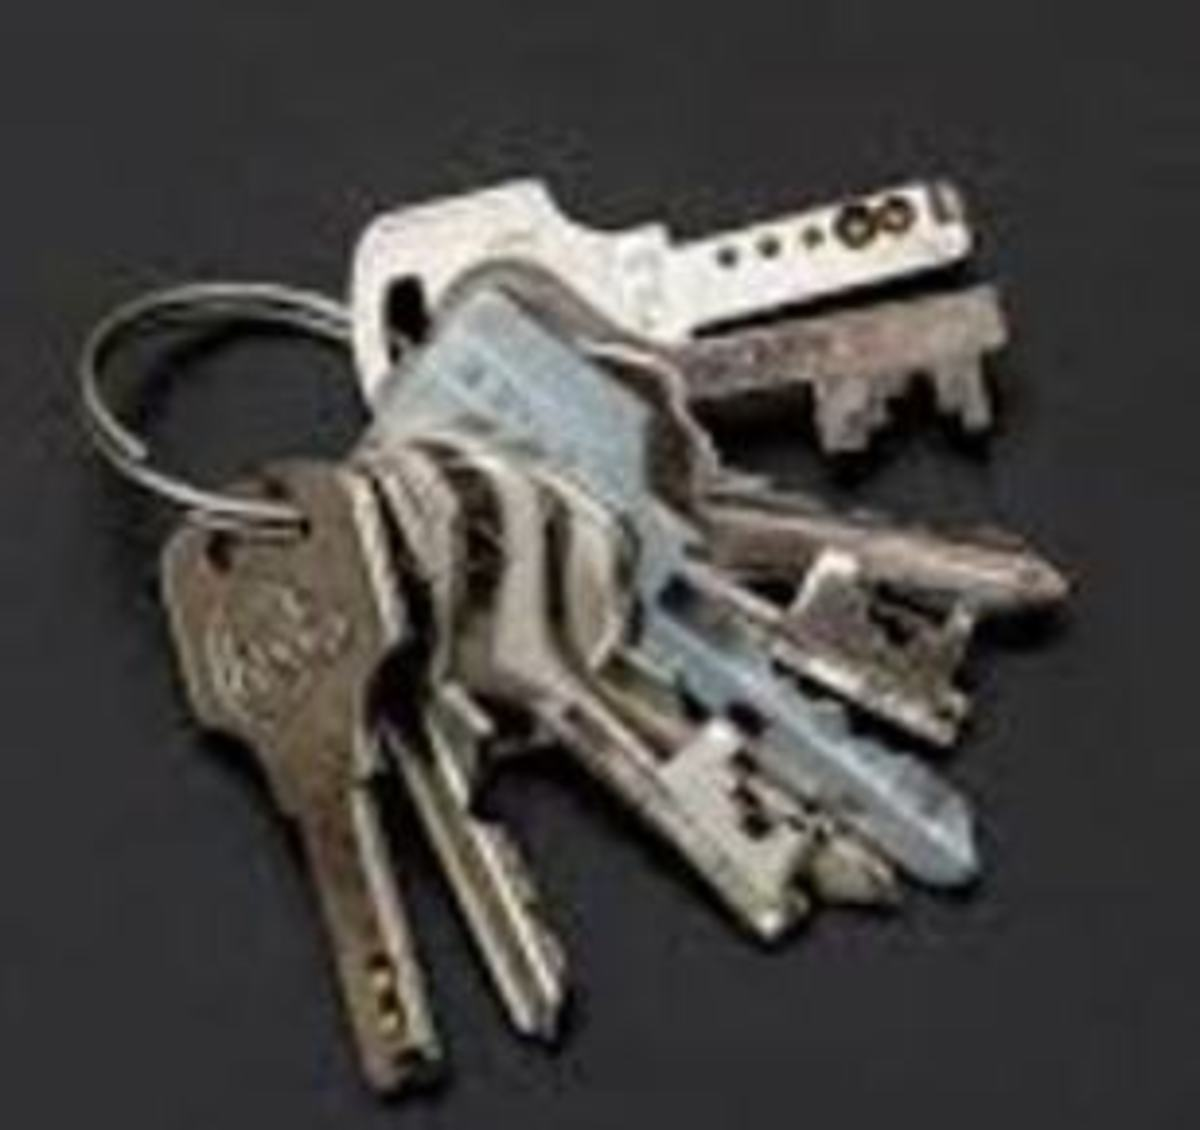 Bunch of Keys Held in a Key Ring